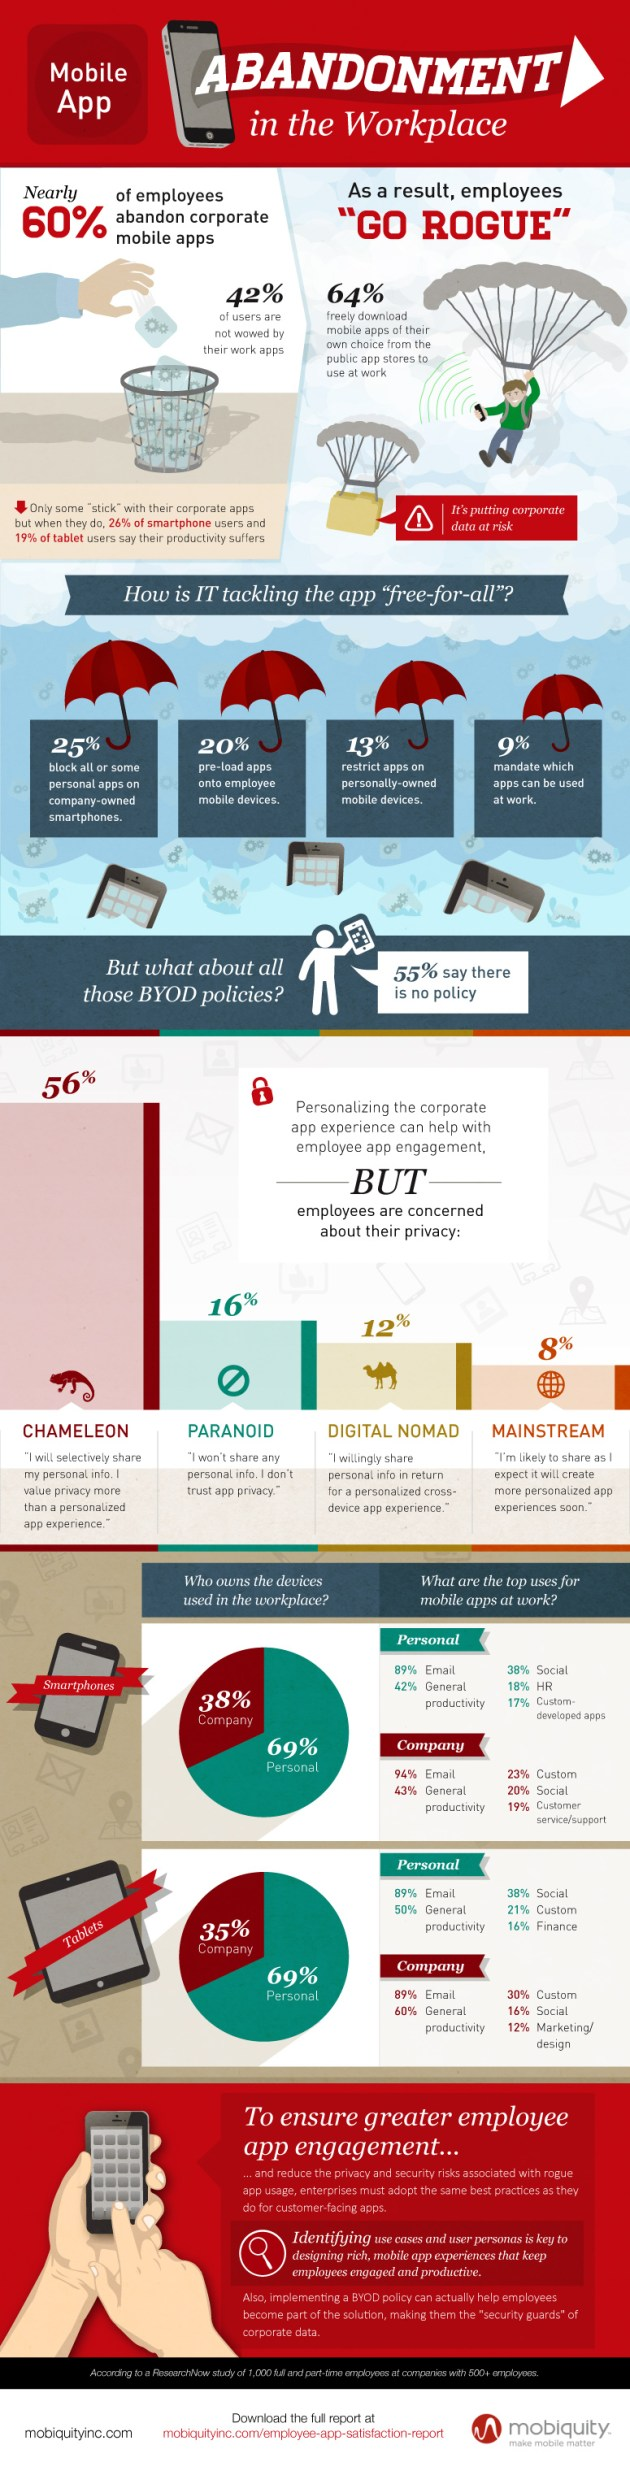 abandonment-in-the-workplace-infographic